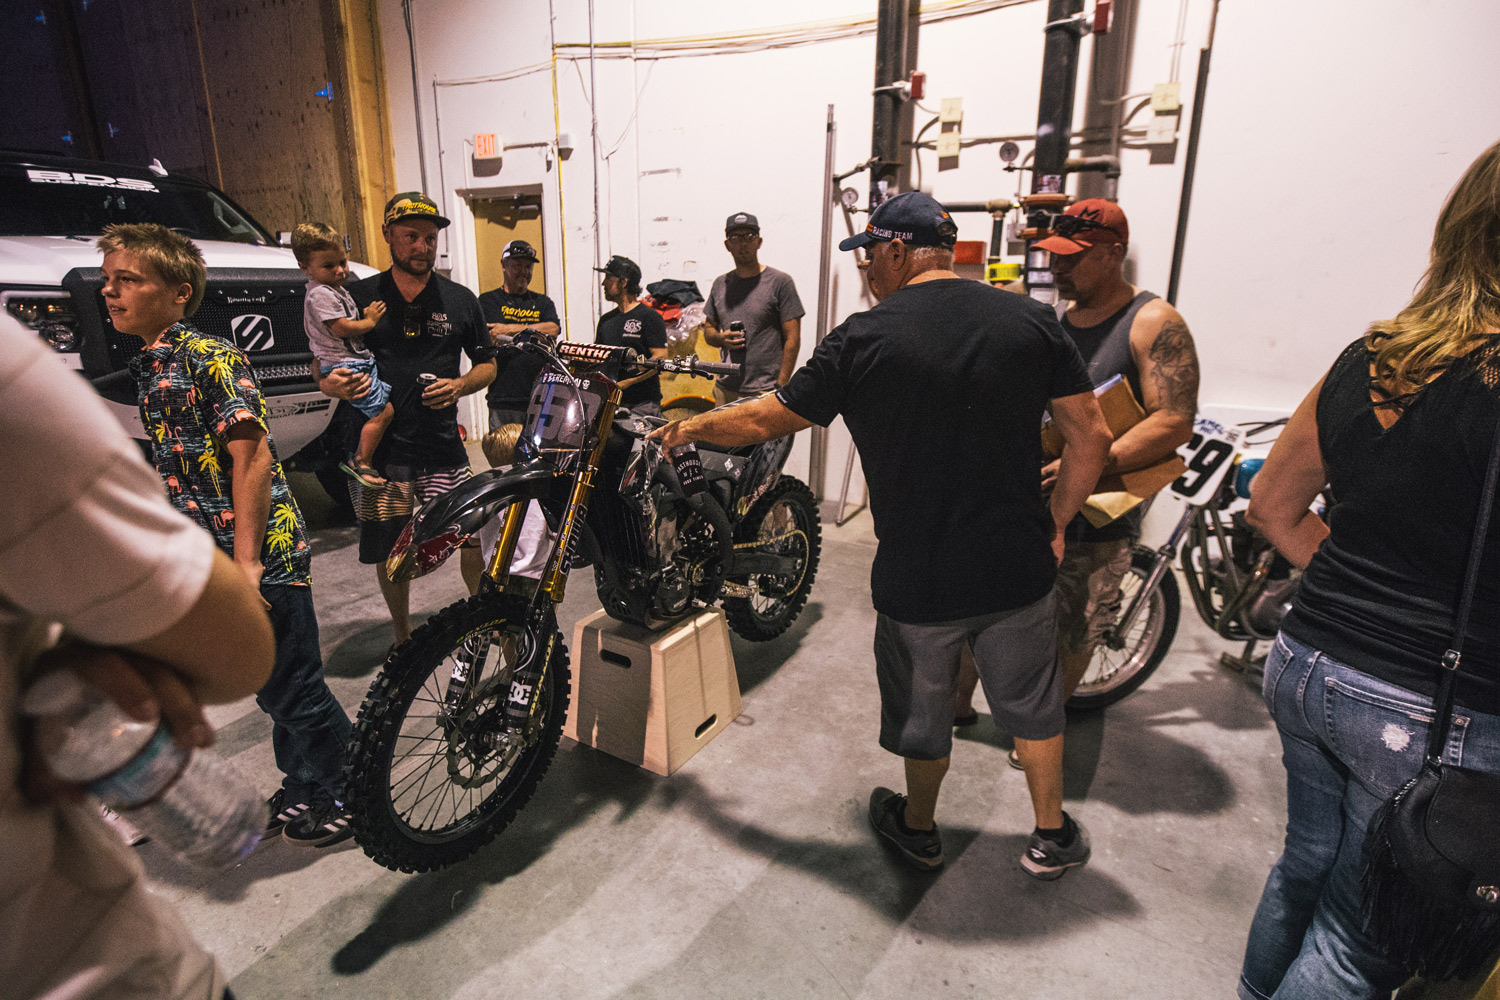 Bereman's X Games bikes was on hand before heading back east for the event.